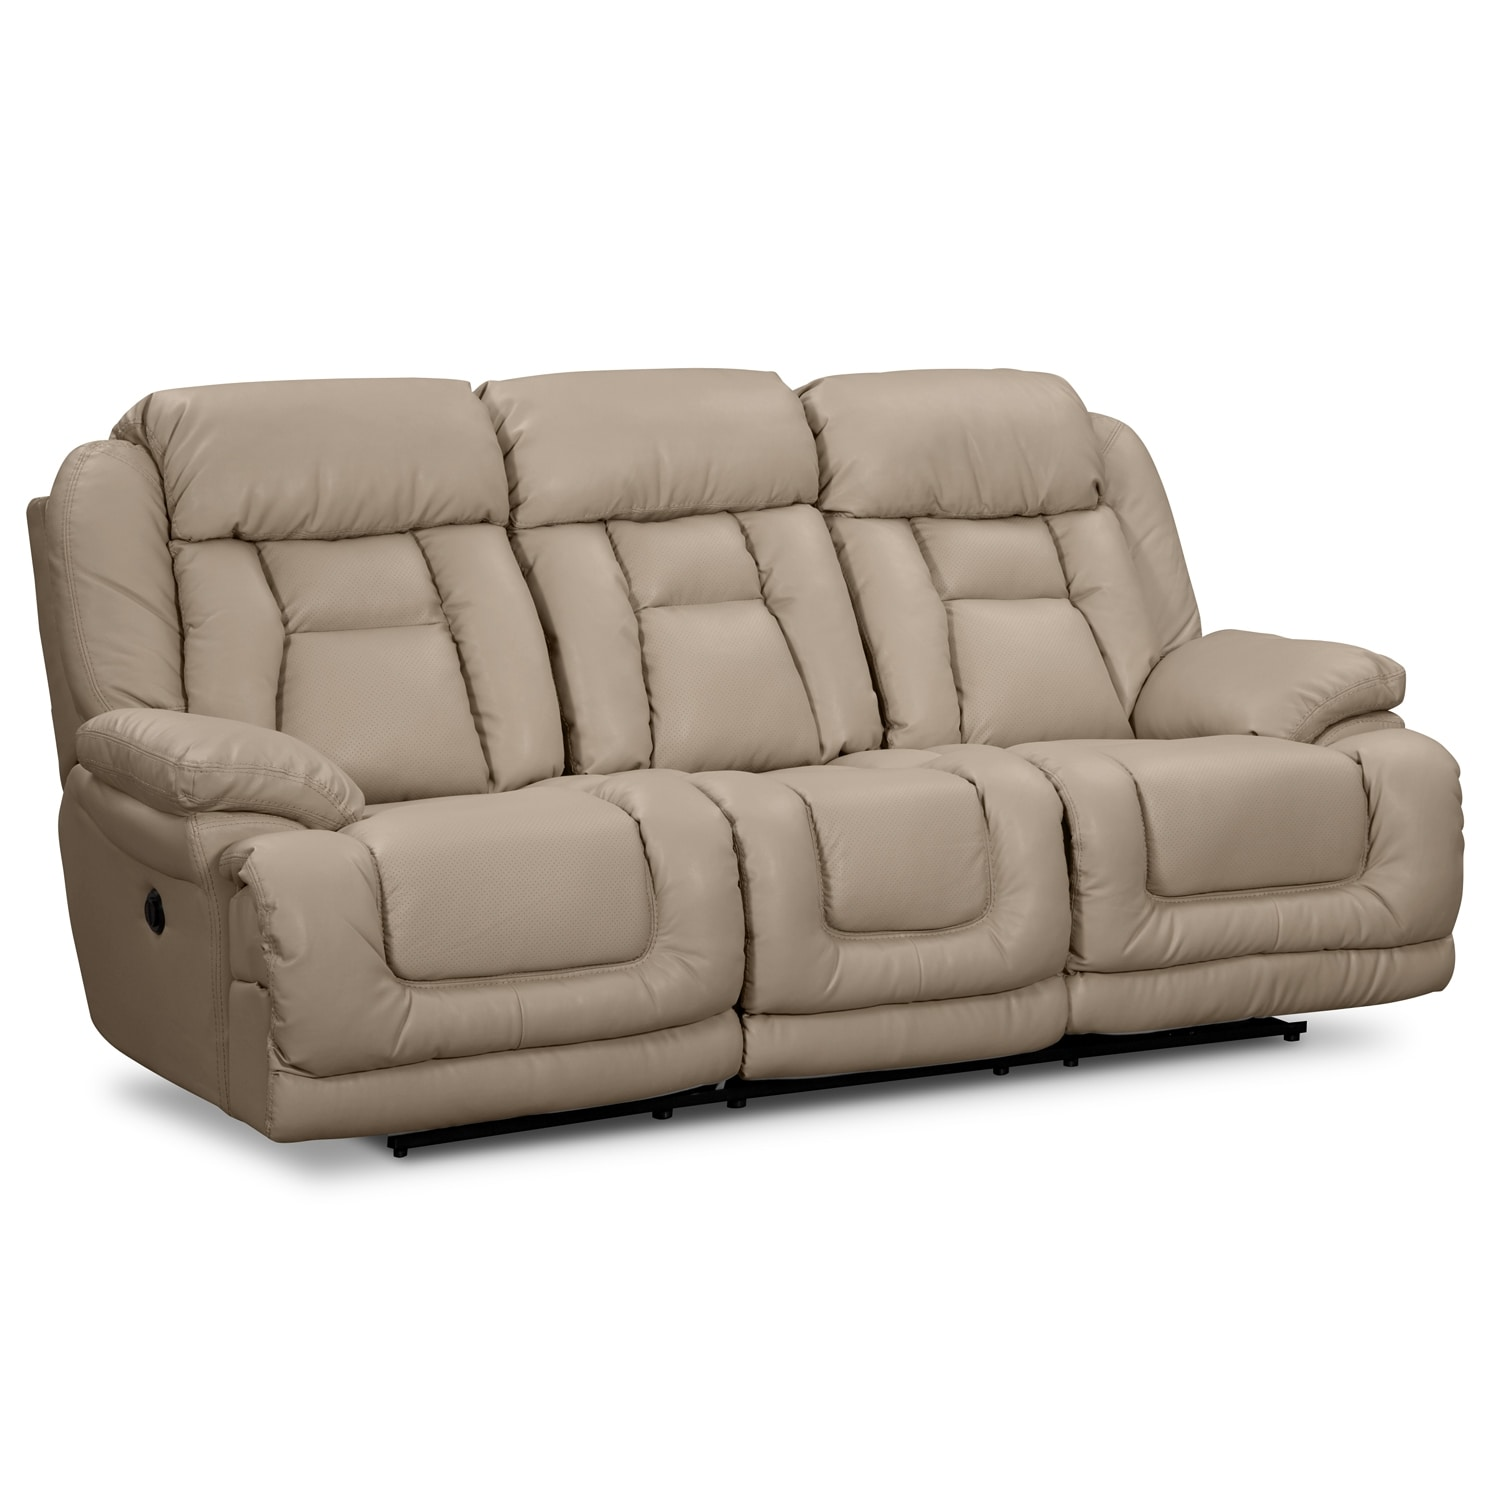 Shop All Reclining Sofas Value City Furniture